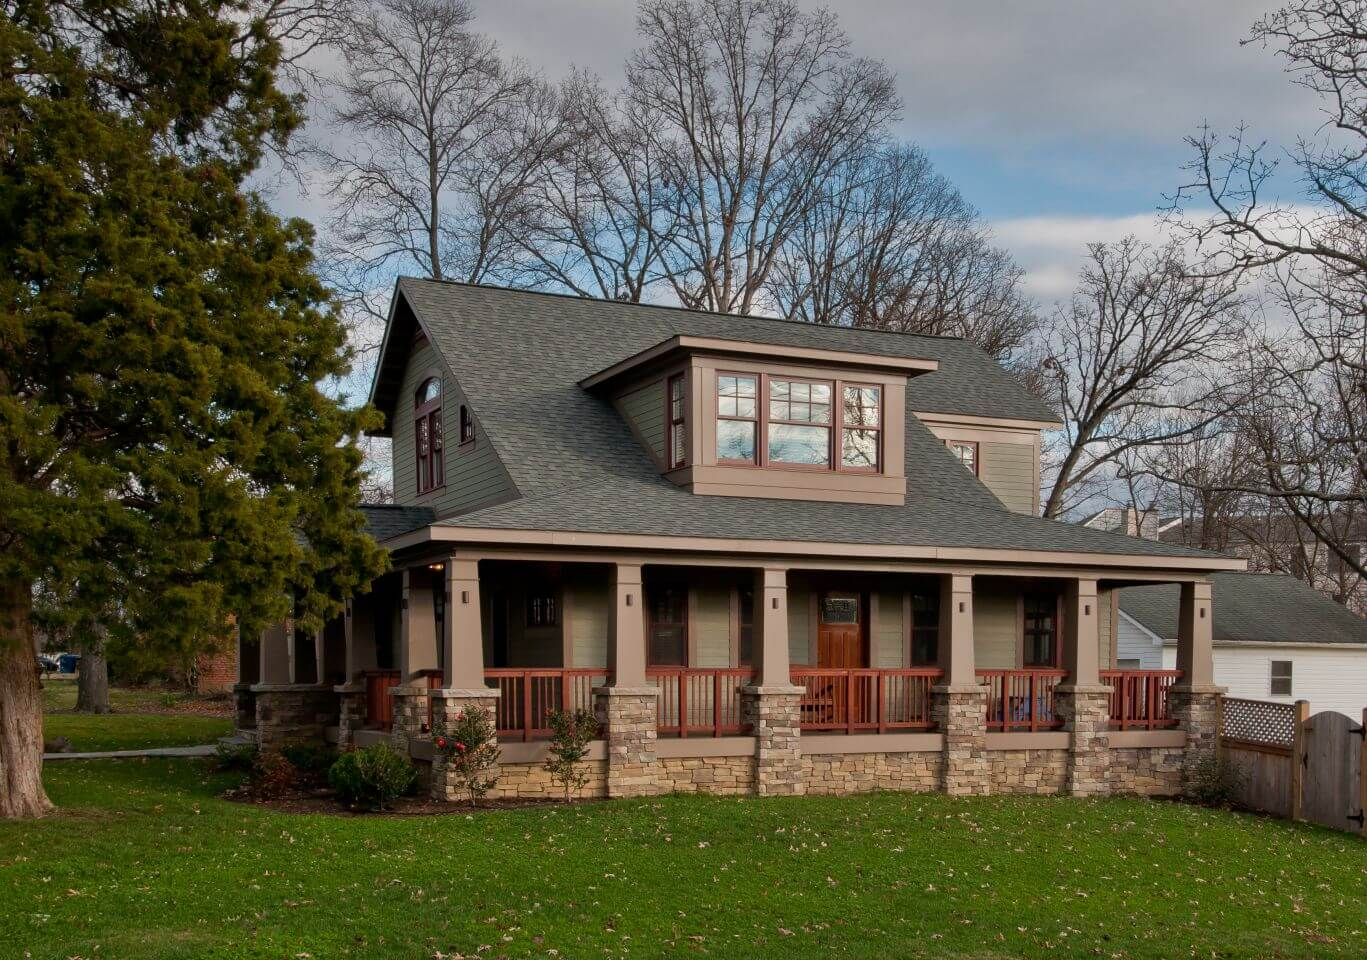 A shot from the side of the home, featuring the gorgeous wraparound porch and providing a peek into the fenced-in backyard.